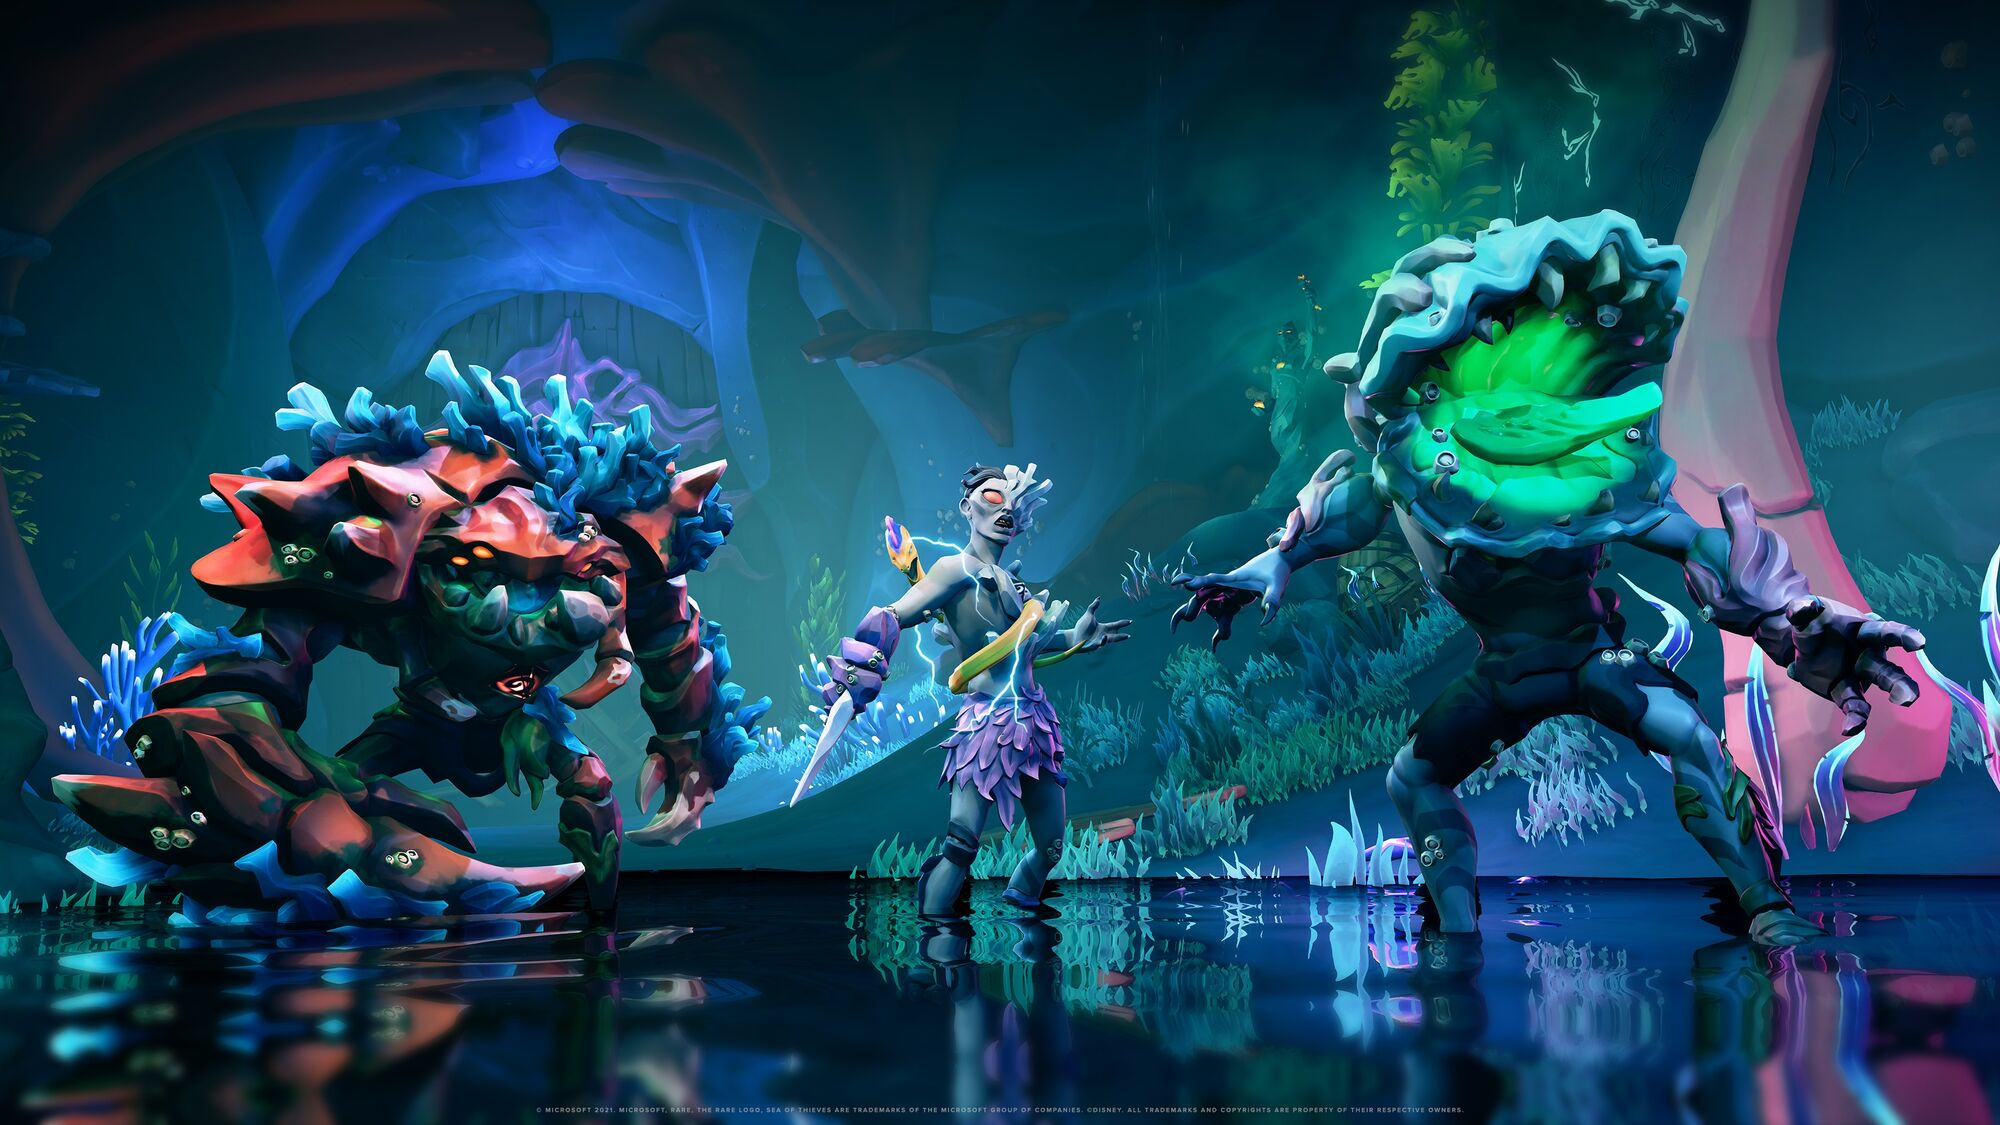 Sea of Thieves -an assortment of underwater enemies, including the scary coral beast.